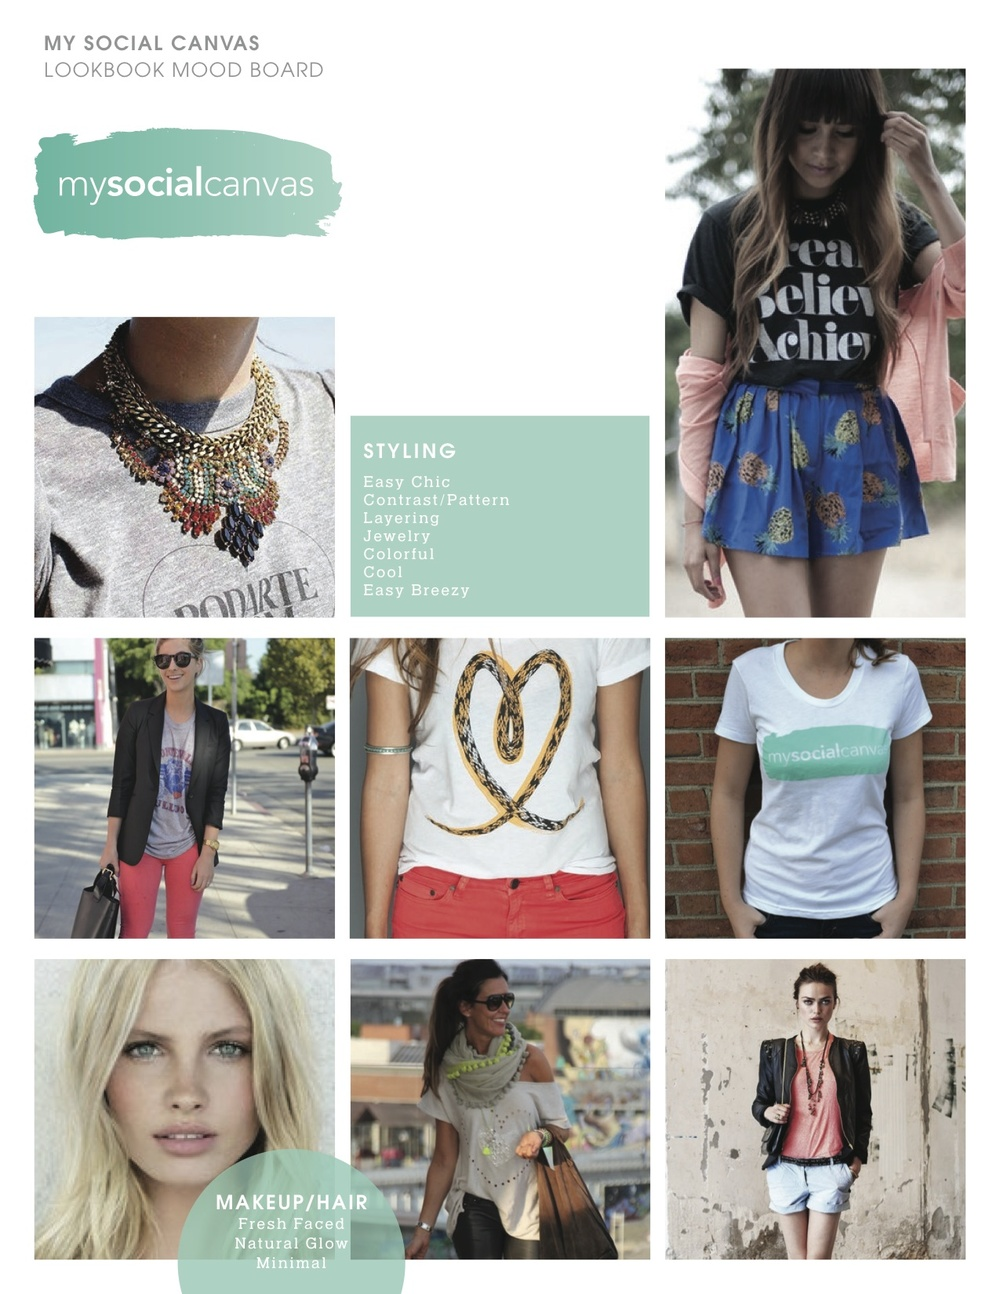 c535051b2a This My Social Canvas look book   mood board is giving us major style  inspiration! What styles do you love  What styles do you want to see on My  Social ...